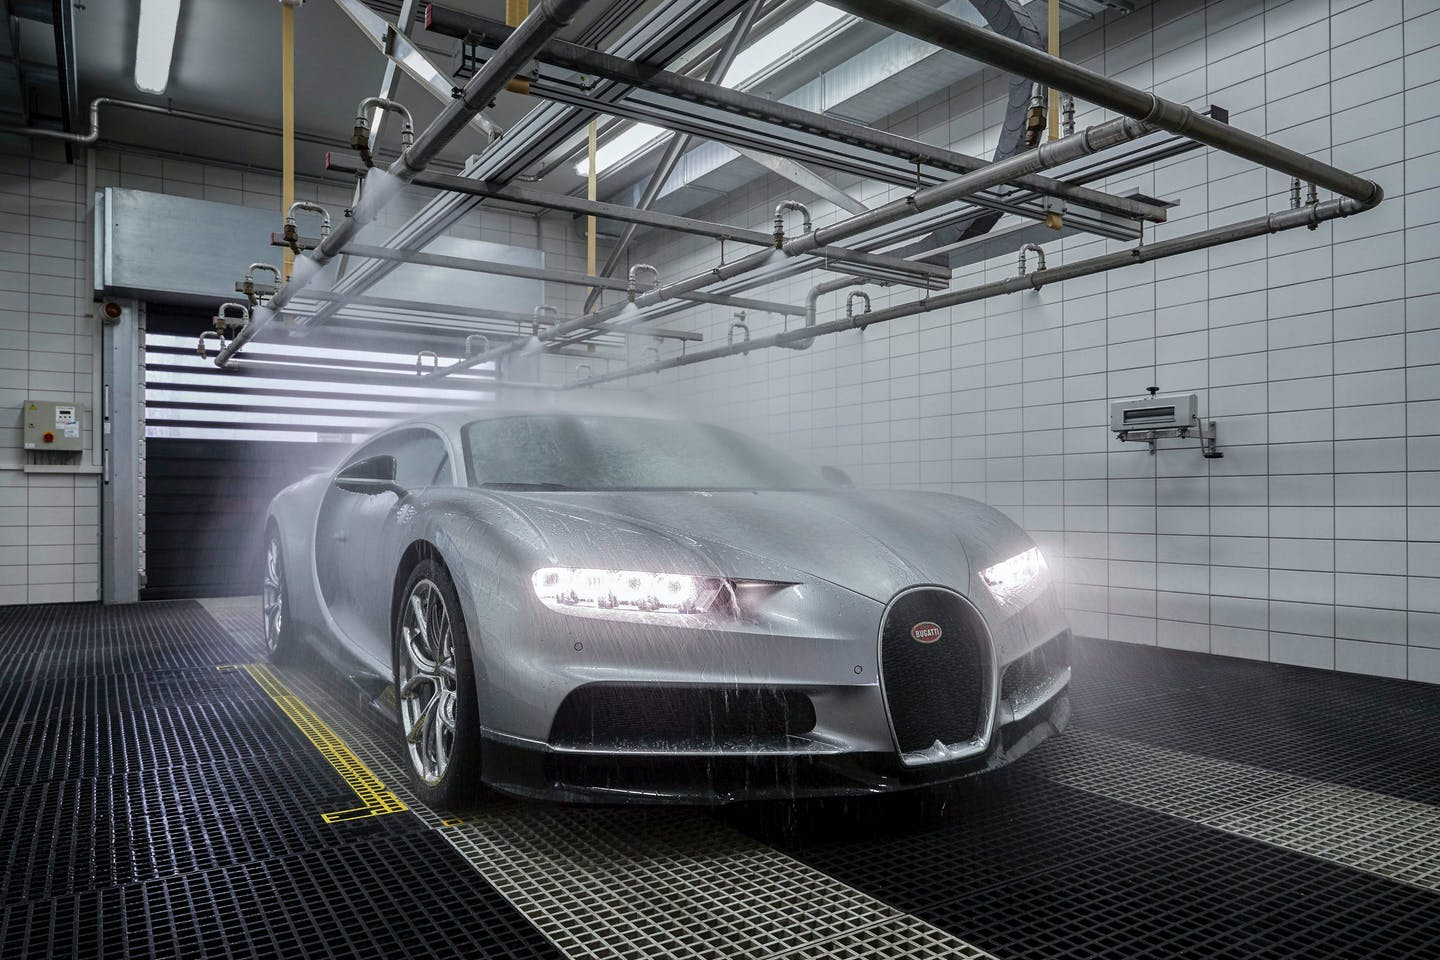 A sports car getting a wash at the factory